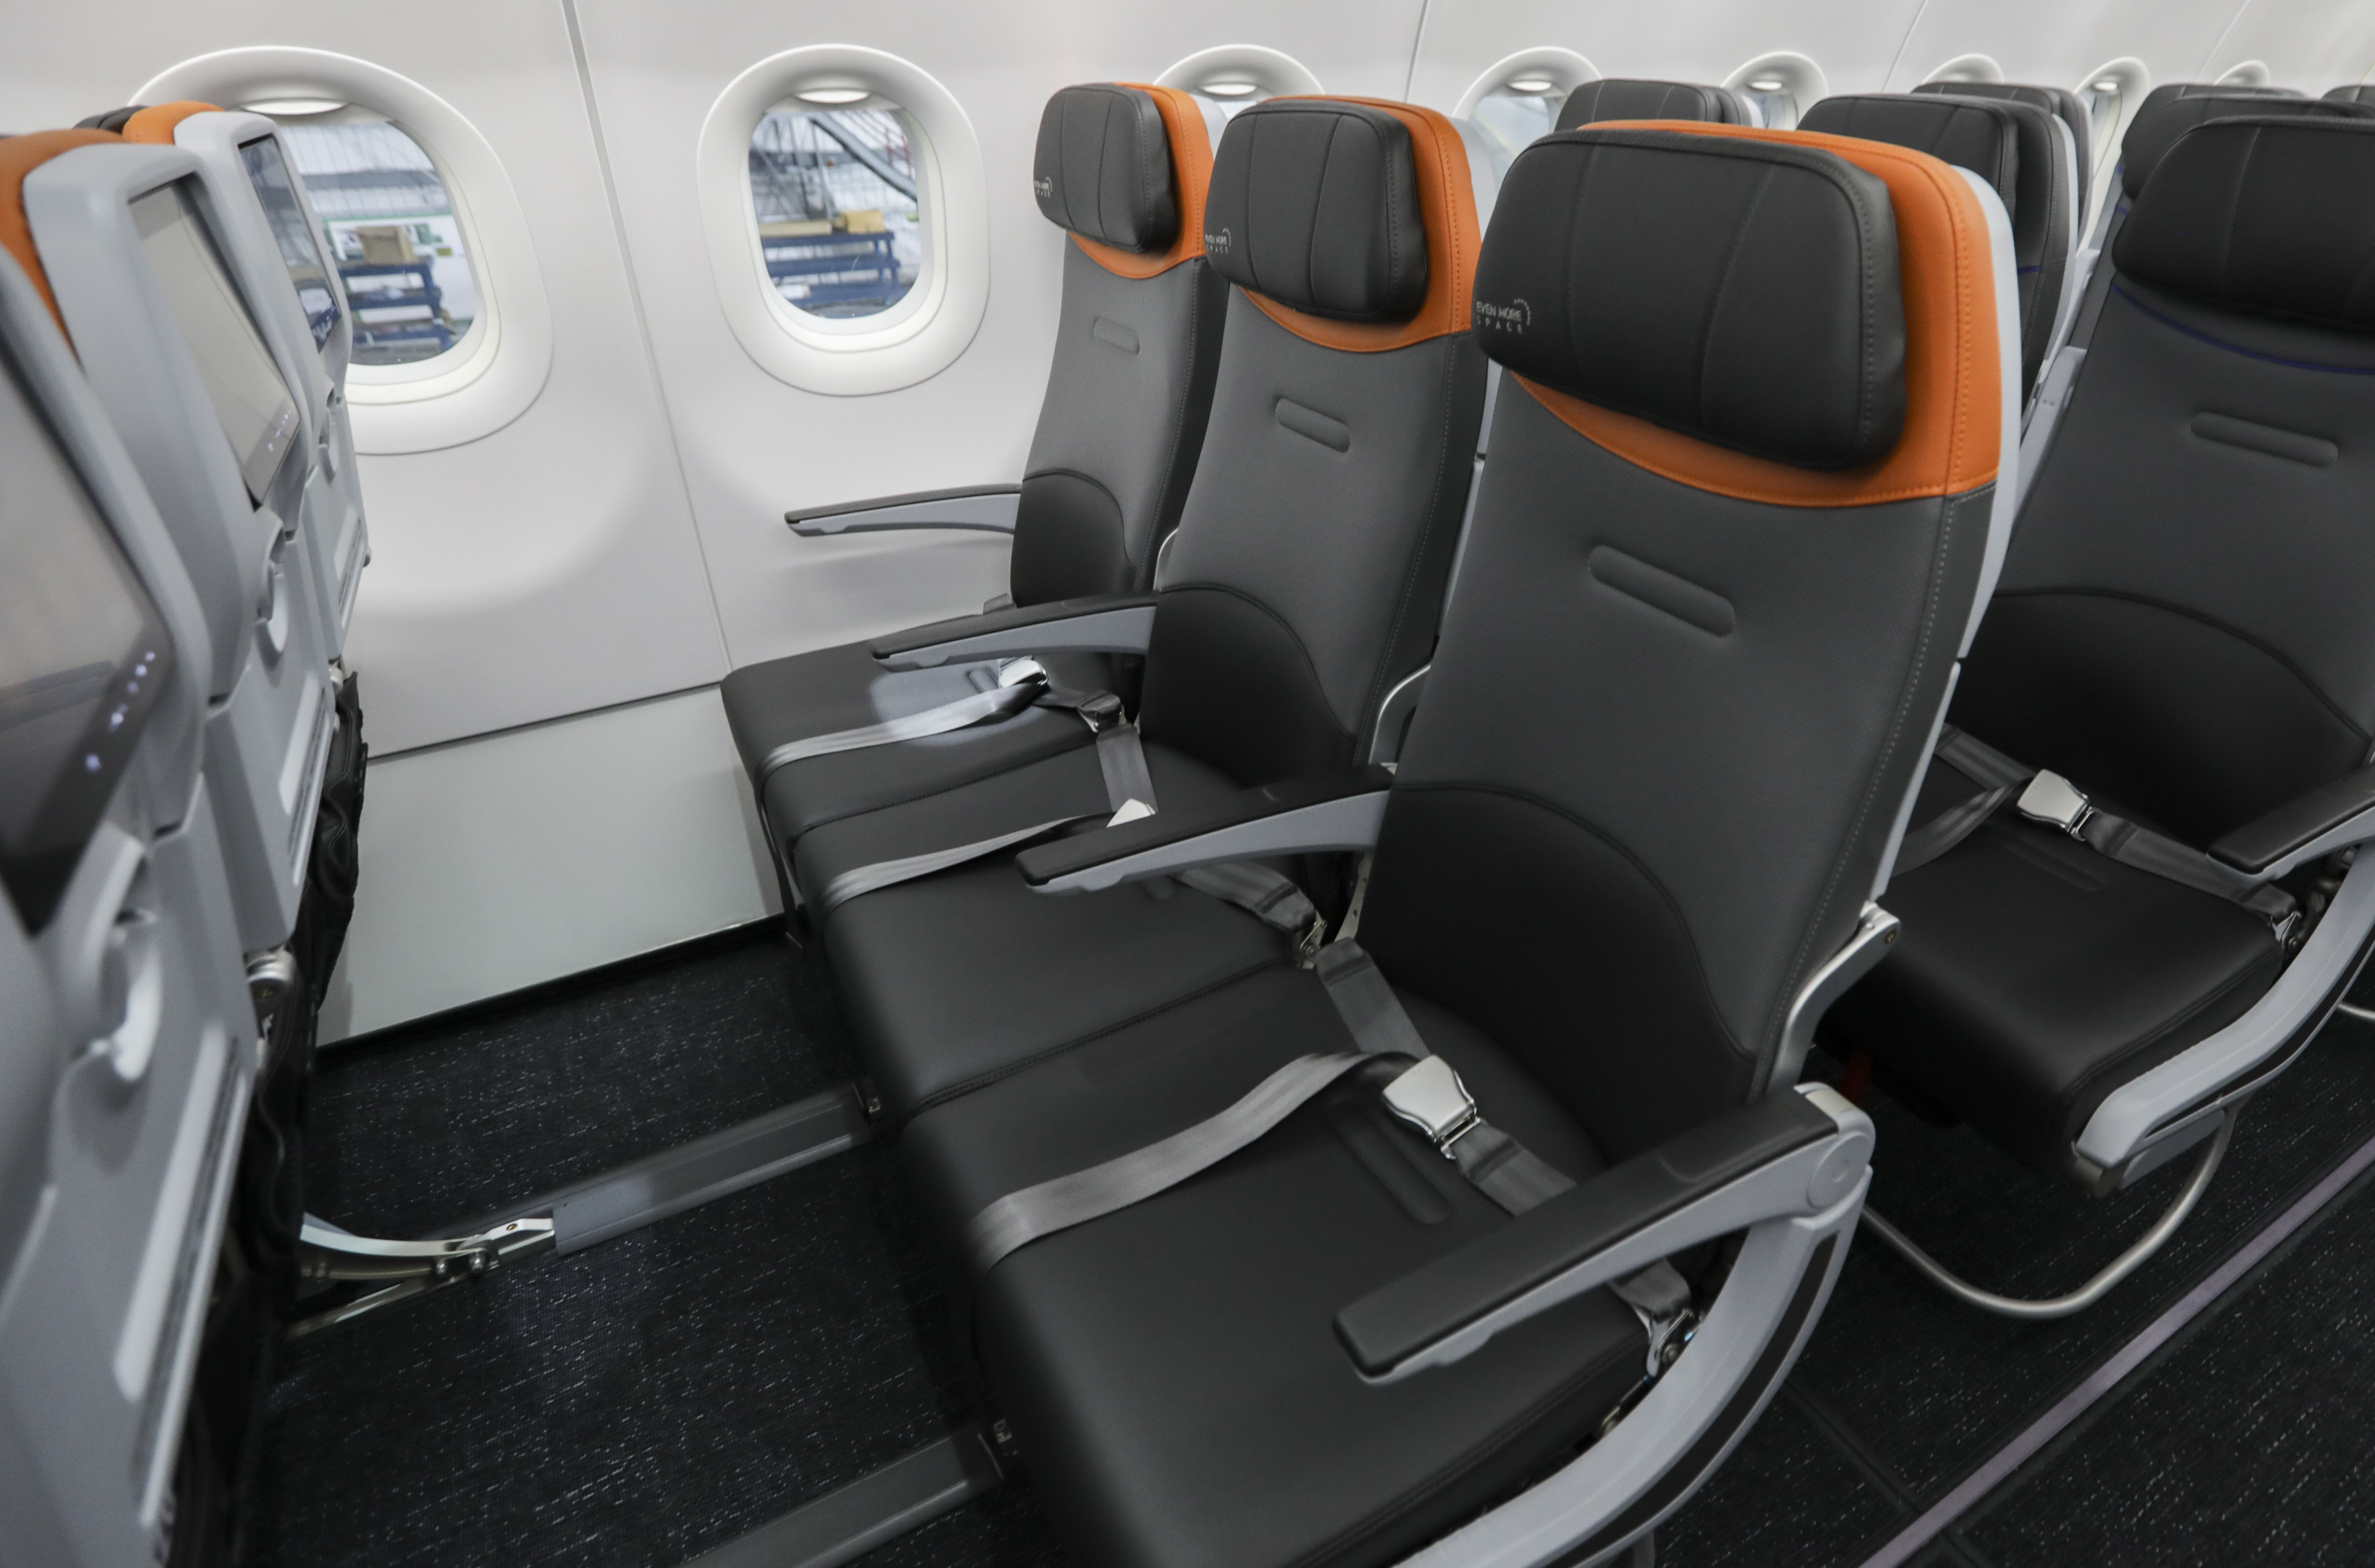 The Meridian seatfrom Collins Aerospace is being fitted to the 2019 JetBlue A320 cabins